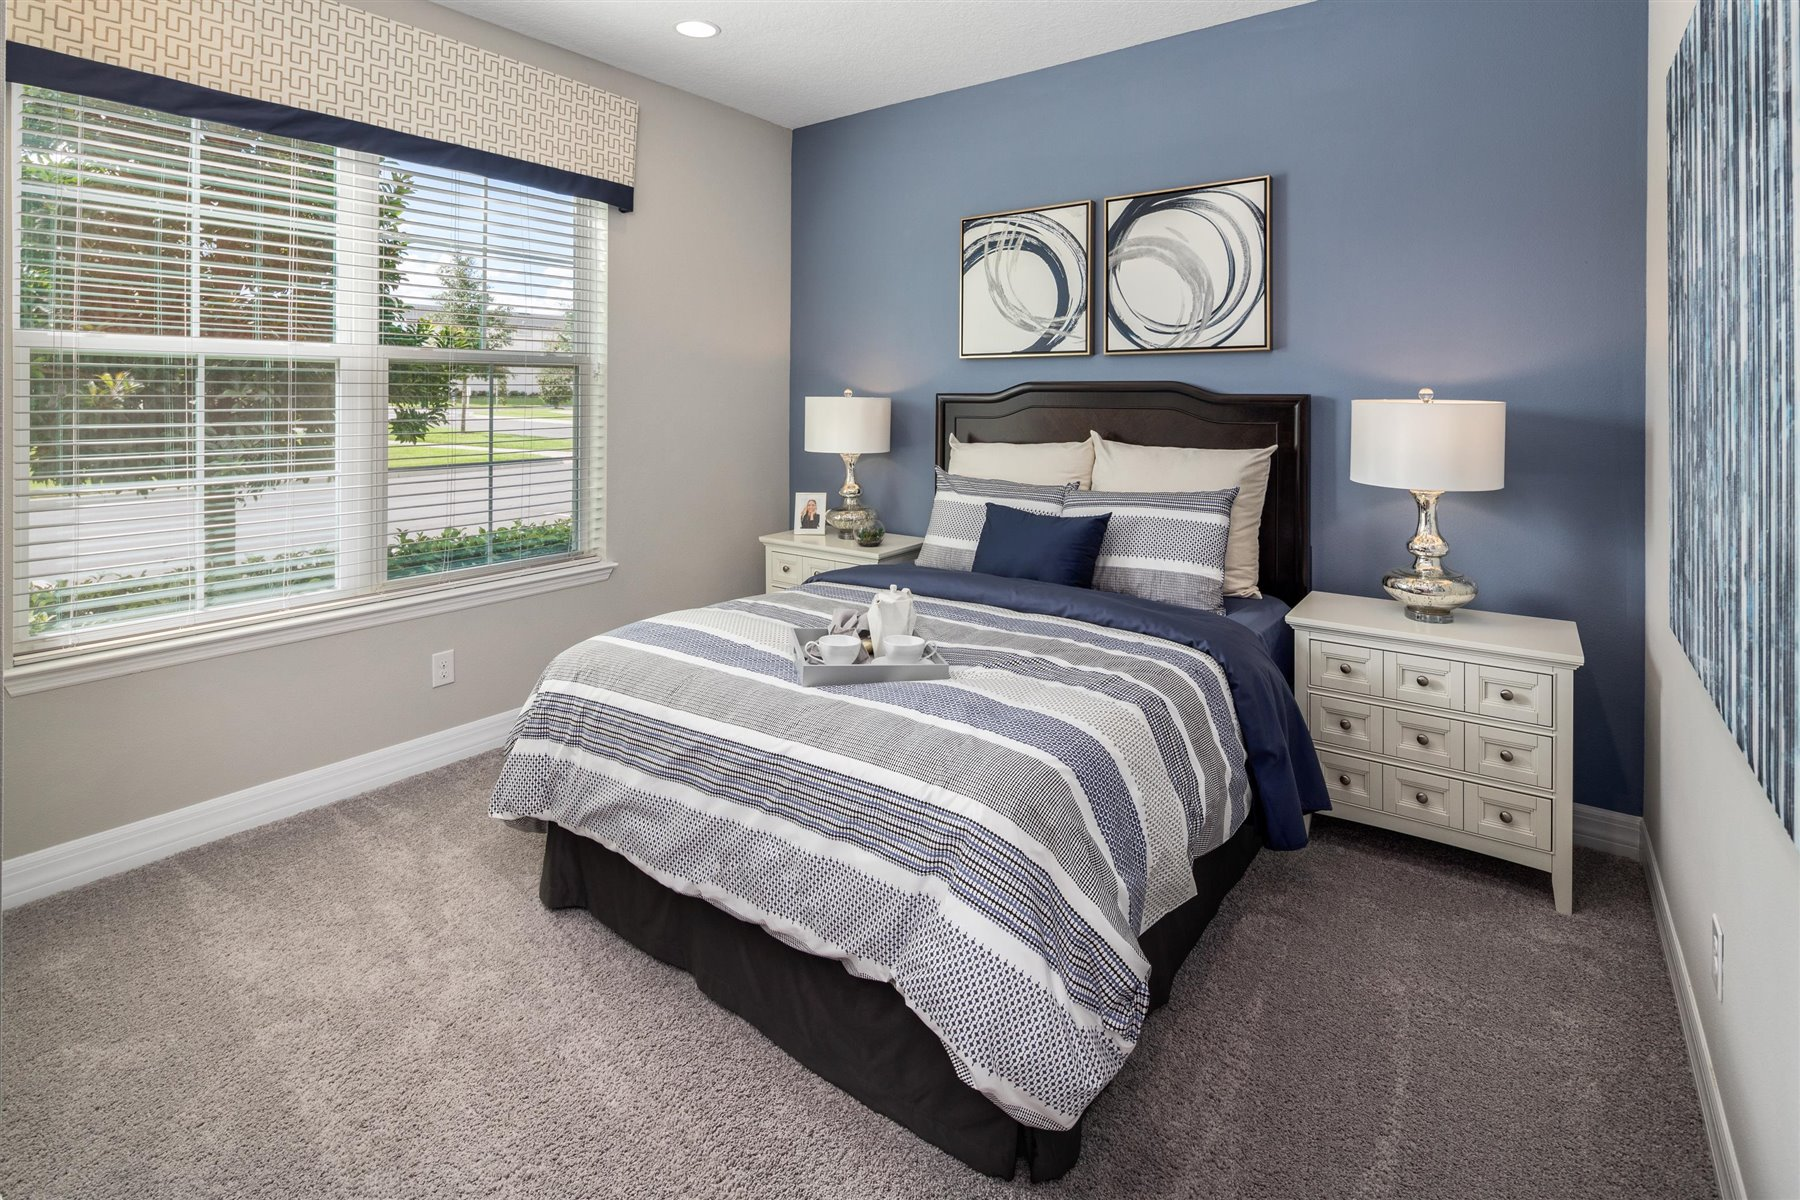 Clearwater Plan Bedroom at Solara Resort in Kissimmee Florida by Mattamy Homes